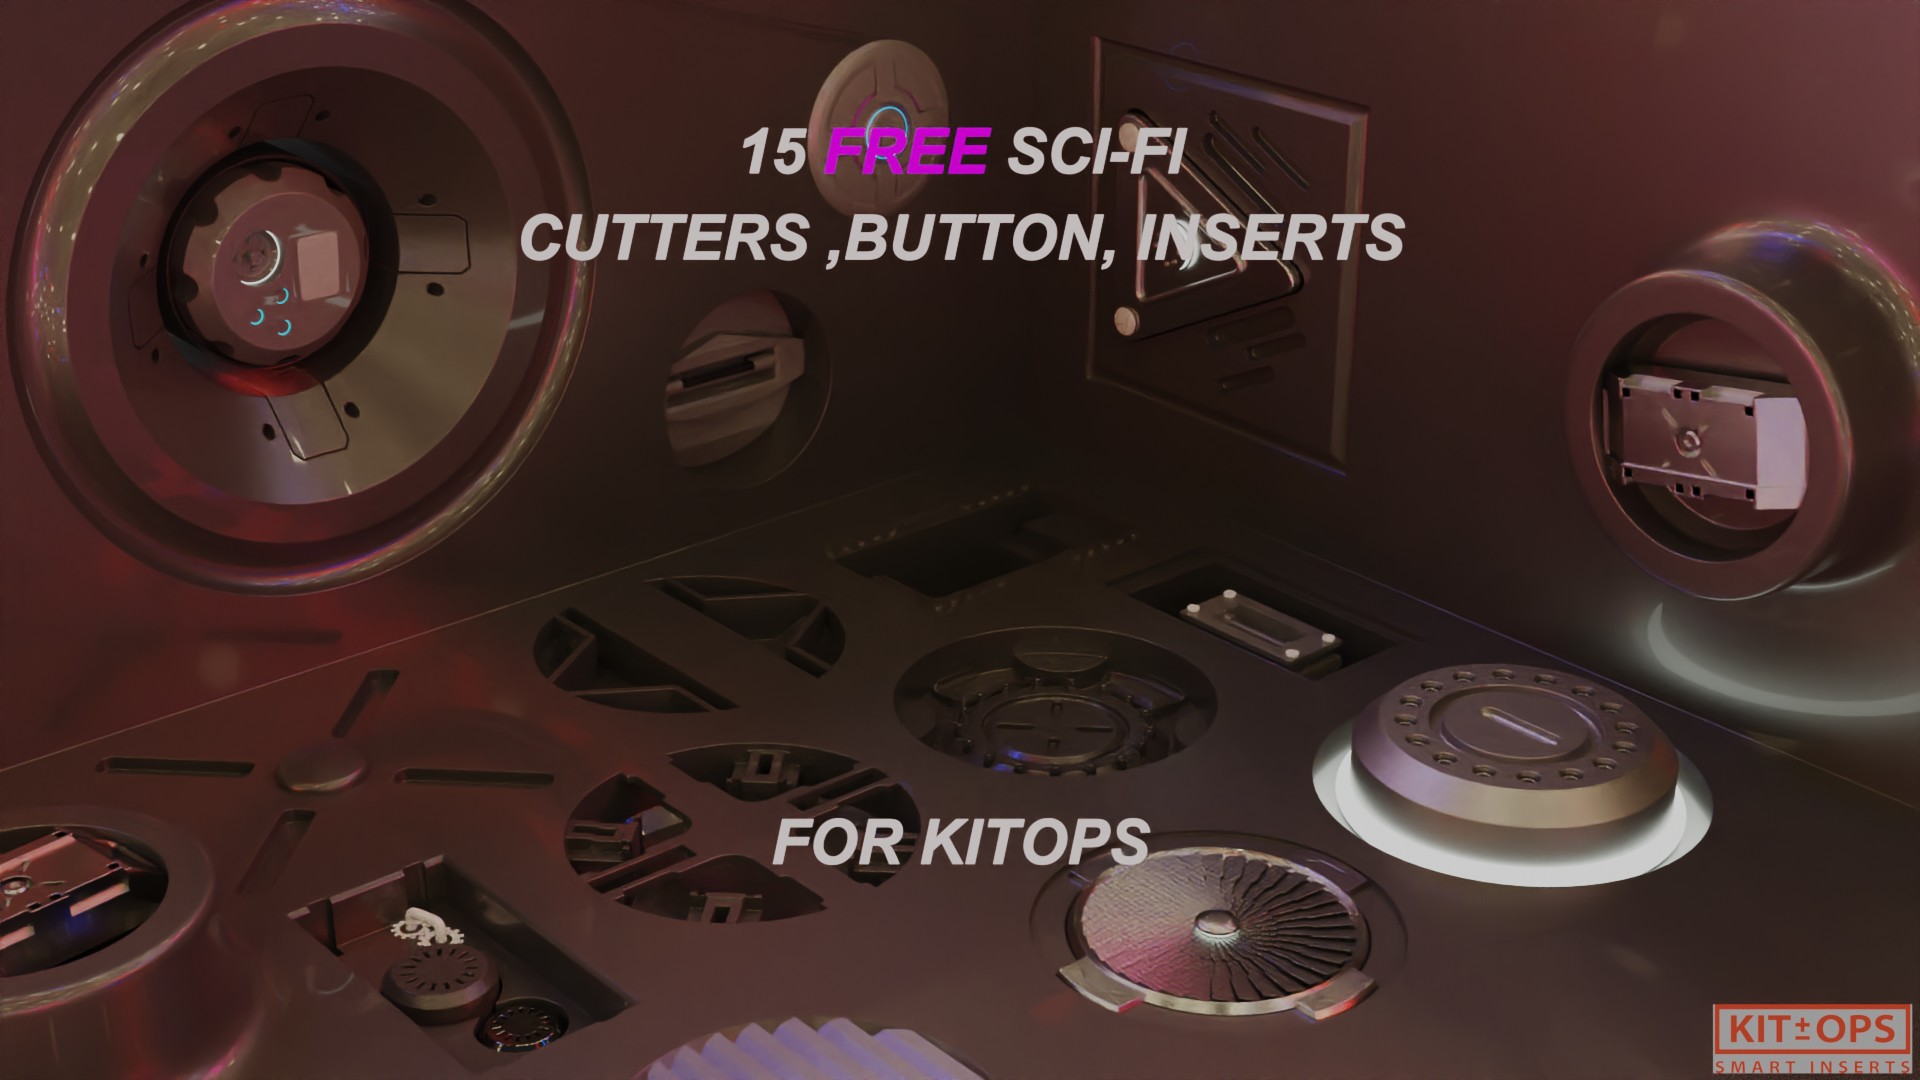 15 Free sci - fi cuttors , inserts and buttons pack kit-ops ready preview image 1